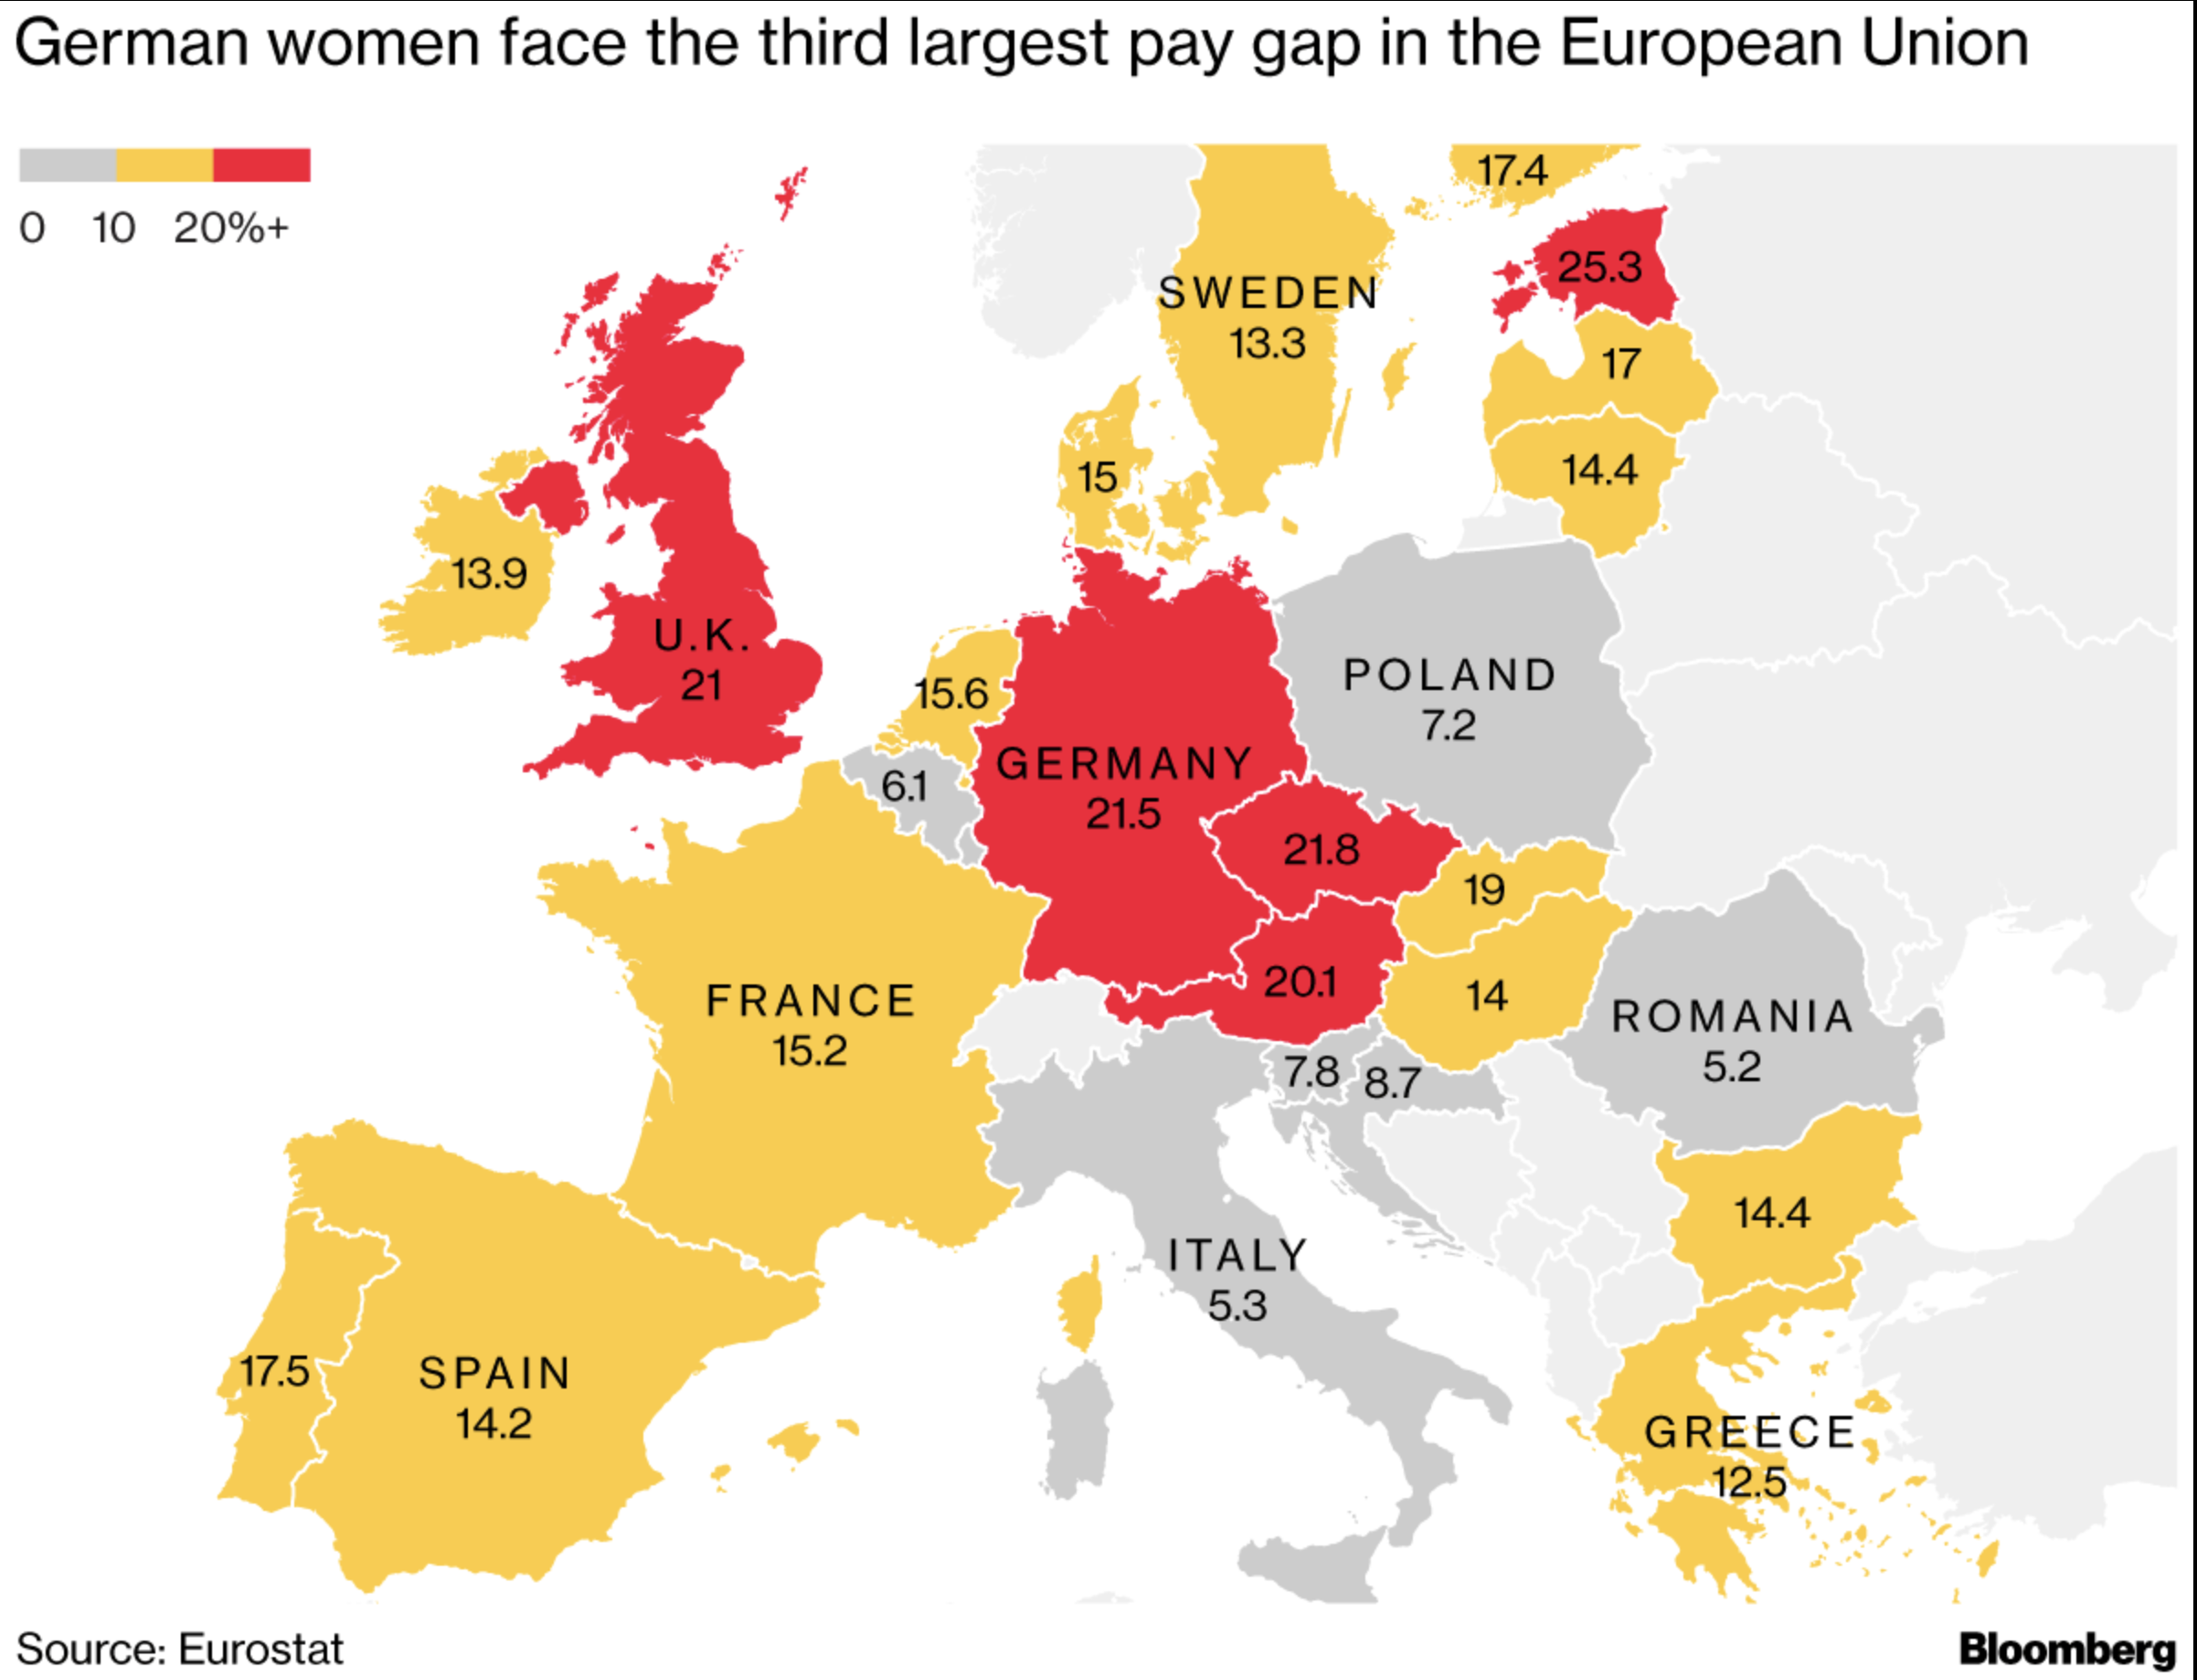 Europe still has a lot of work to do to close its gender pay gaps